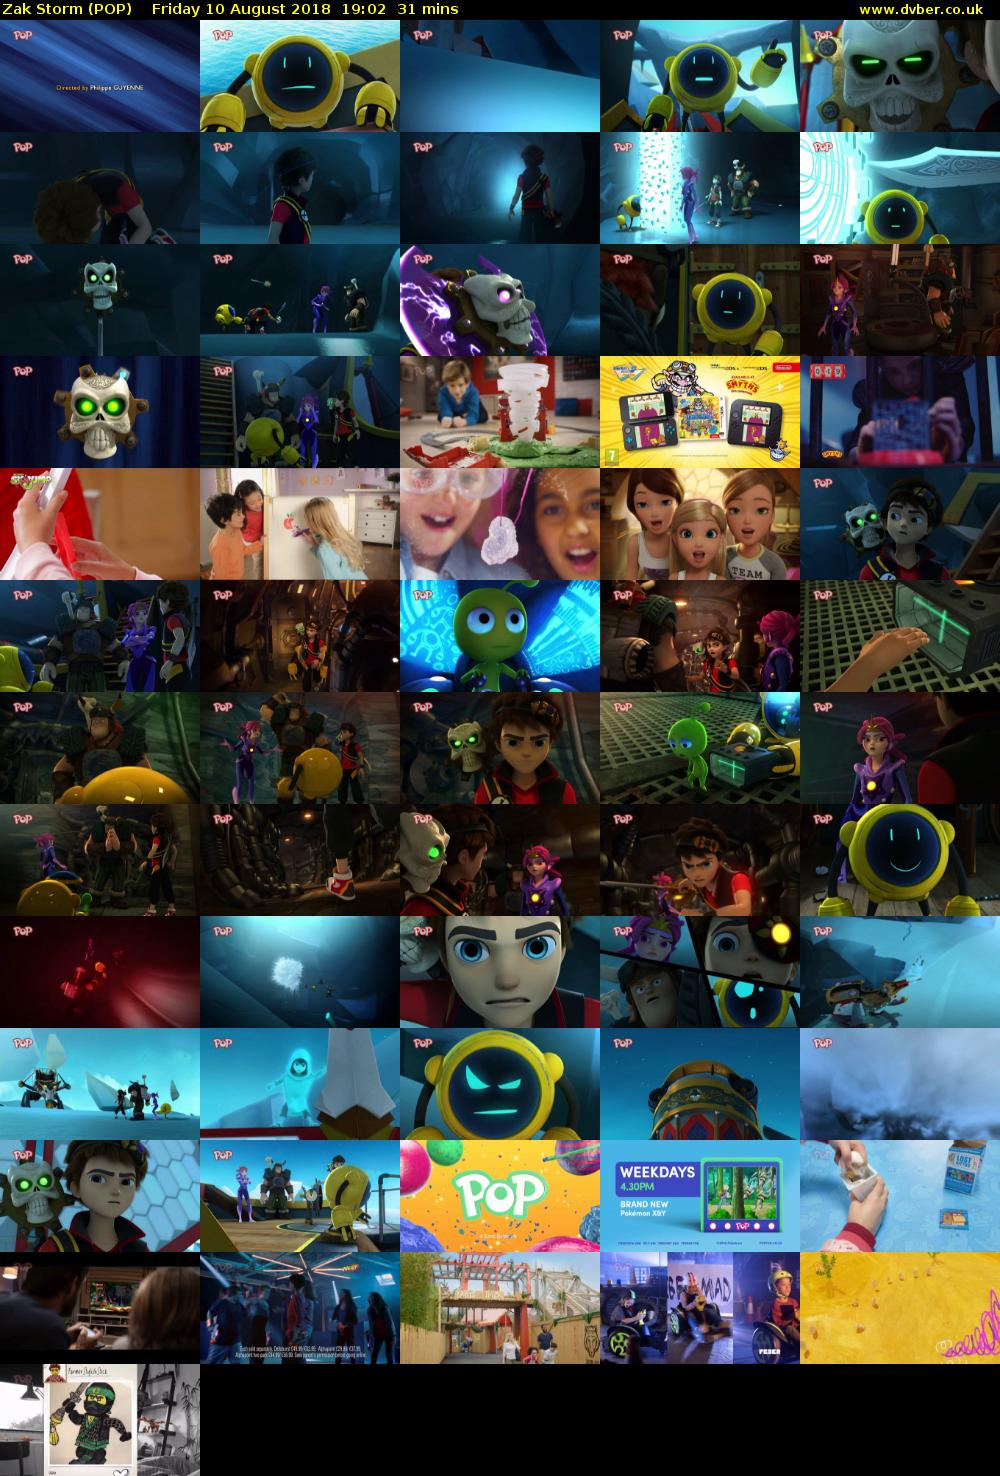 Zak Storm (POP) Friday 10 August 2018 19:02 - 19:33